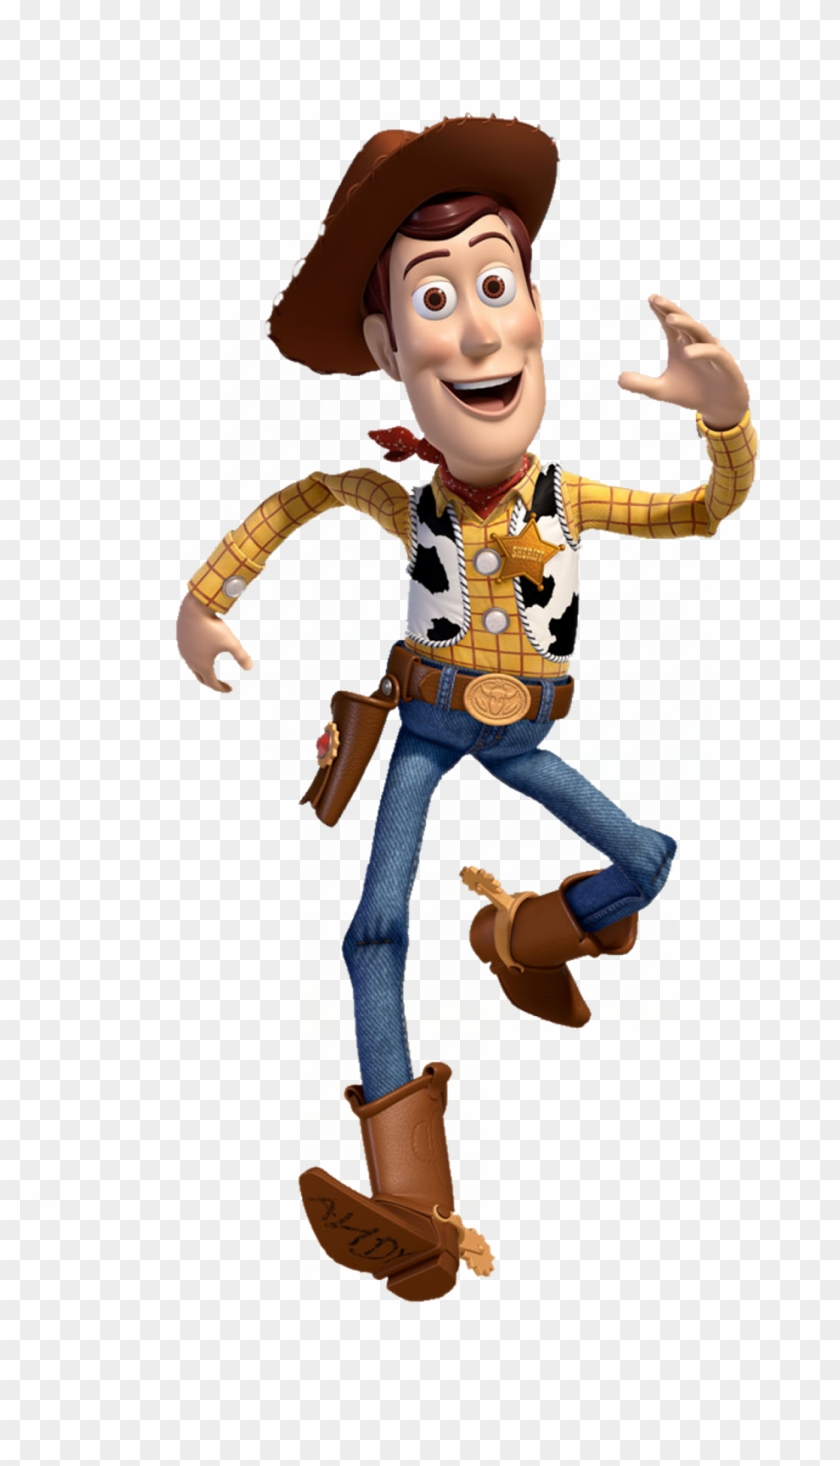 Pin By Natalie On Naty - Woody Toy Story Png #268472